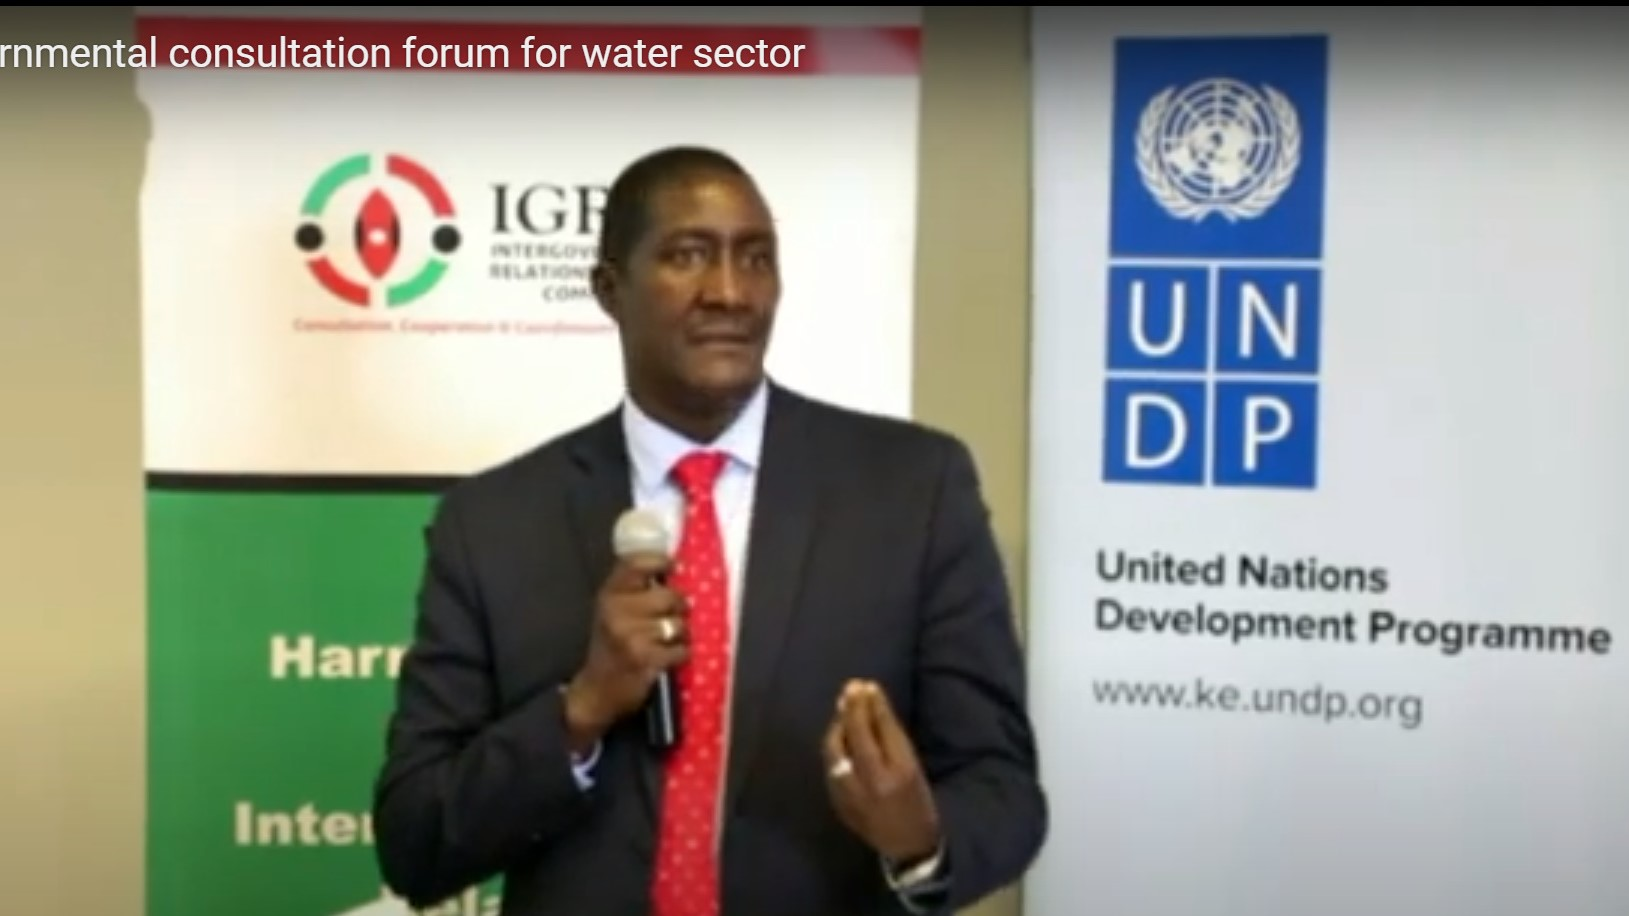 Intergovernmental consultation forum for the water sector